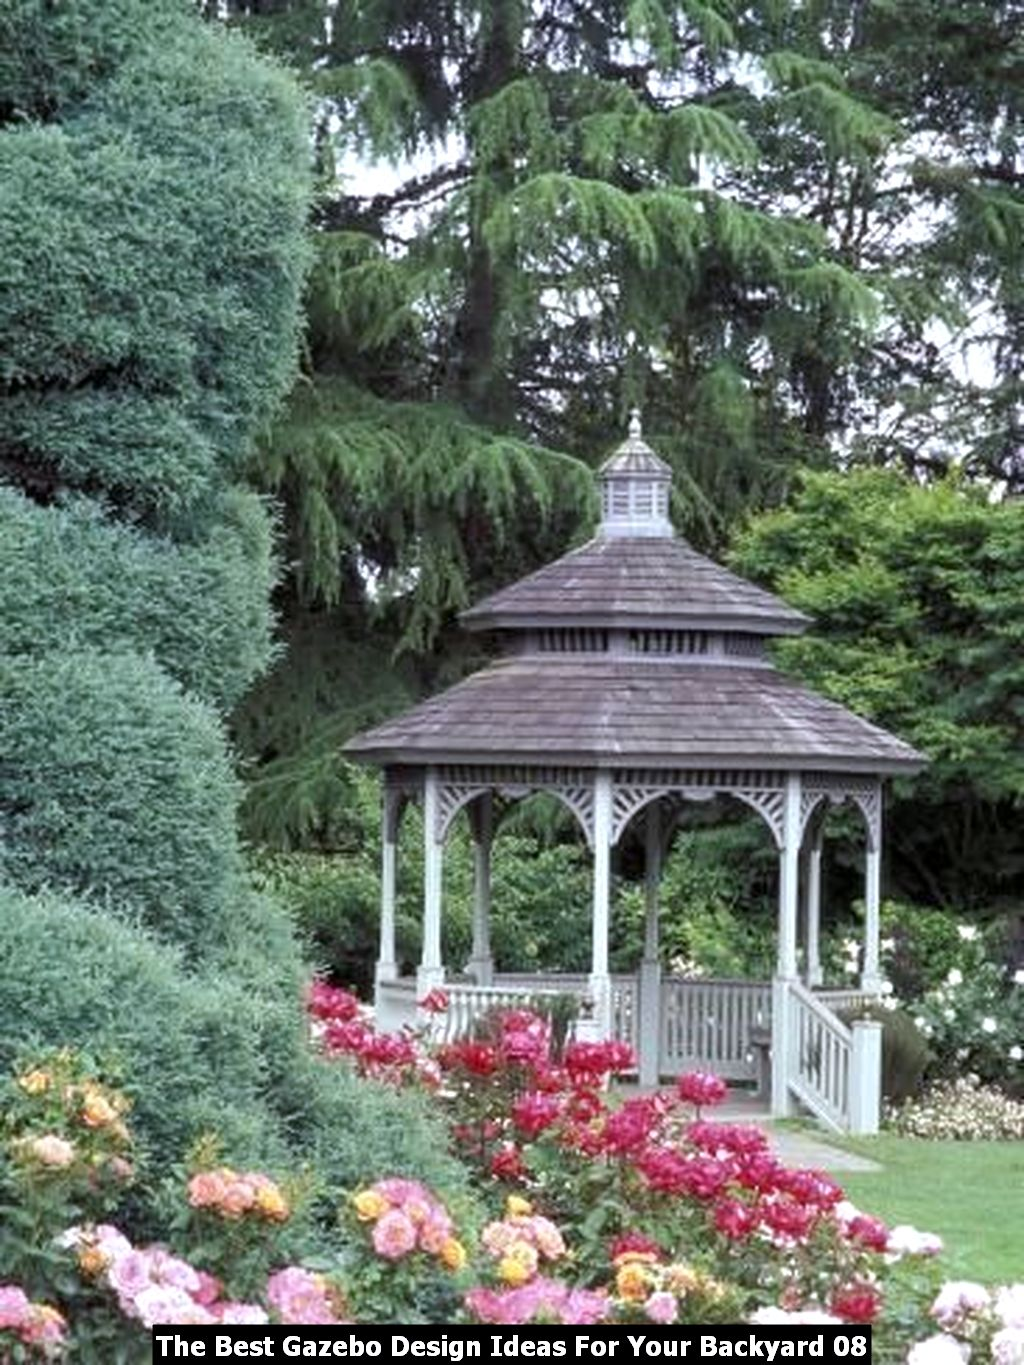 The Best Gazebo Design Ideas For Your Backyard 08